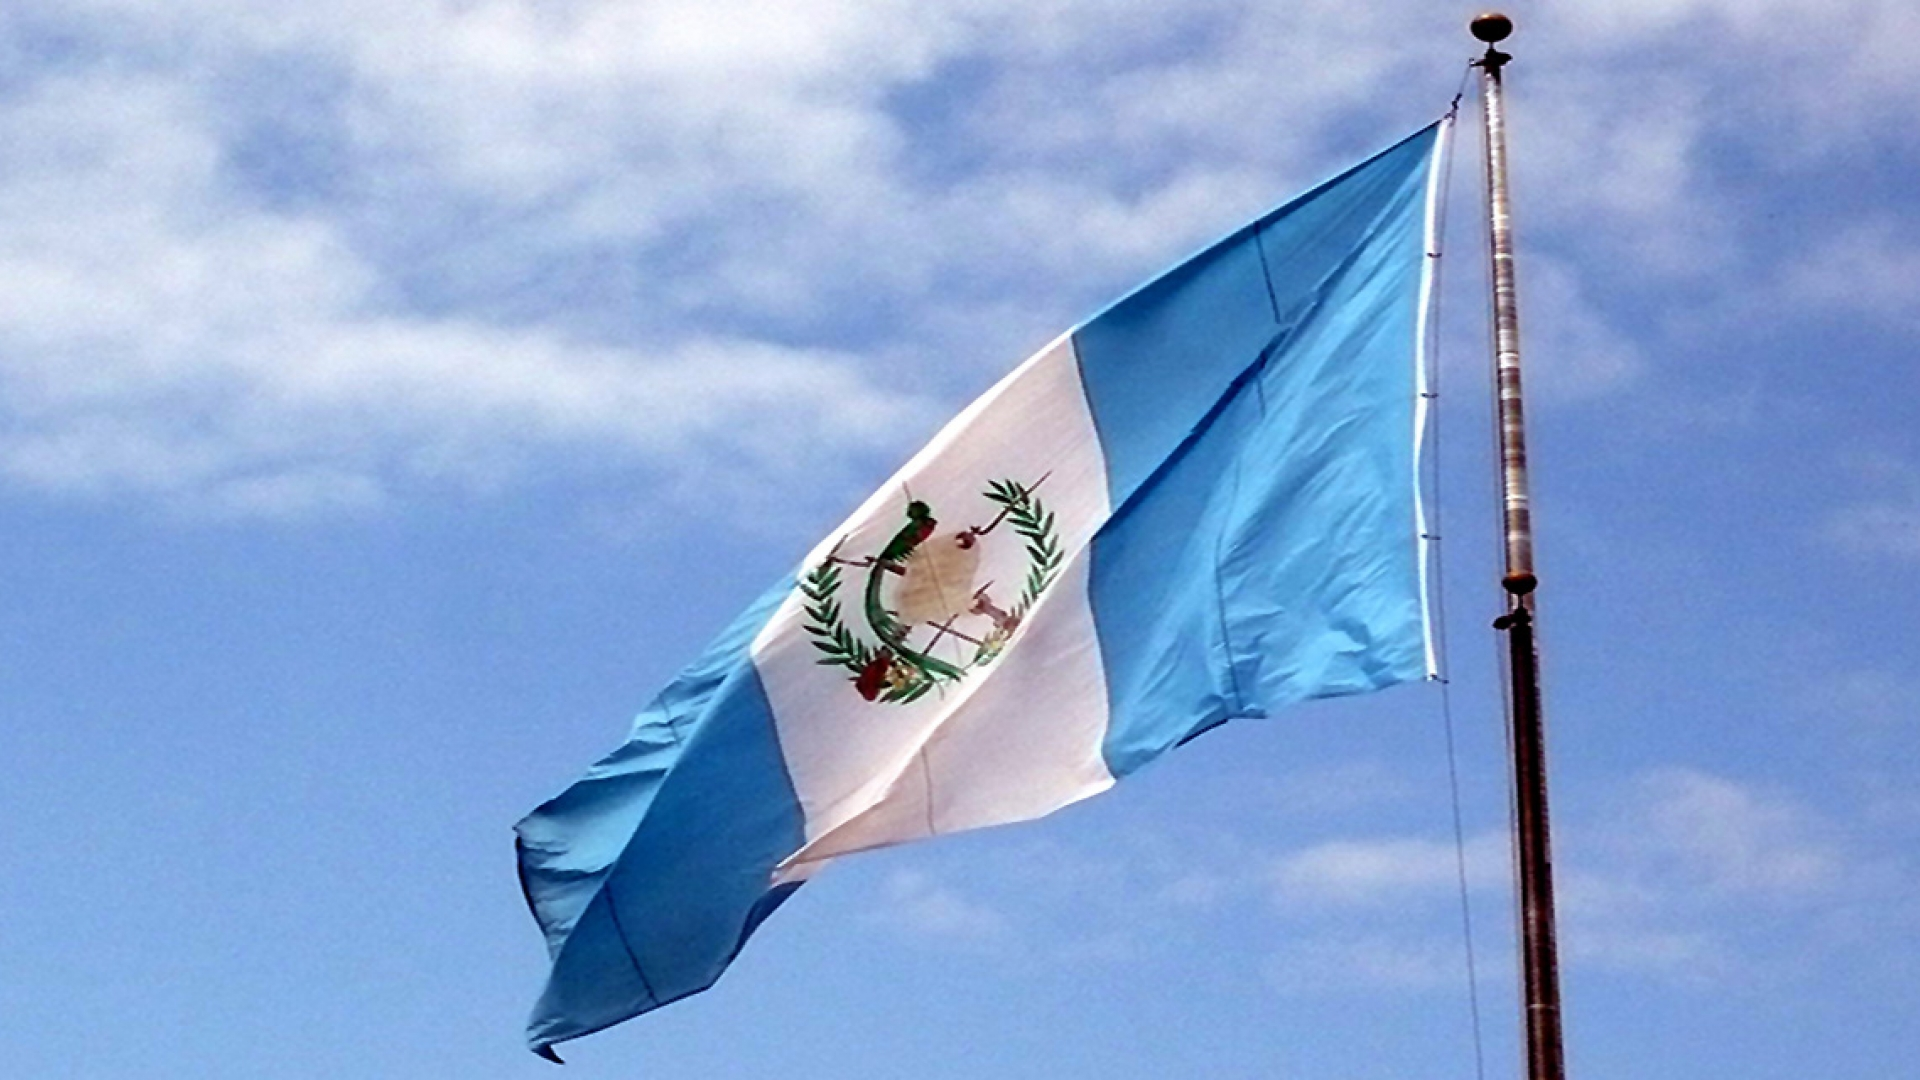 iaea mission says guatemala shows commitment to radiation safety